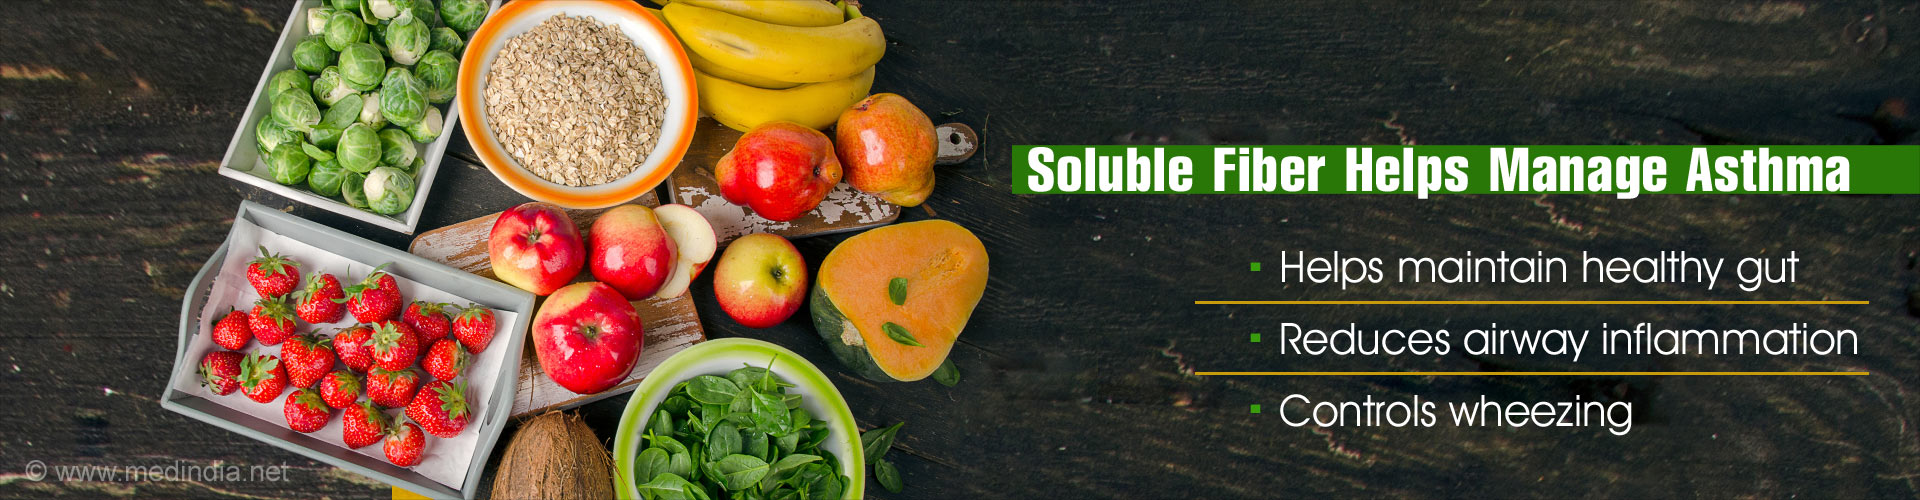 Soluble fiber helps manage asthma